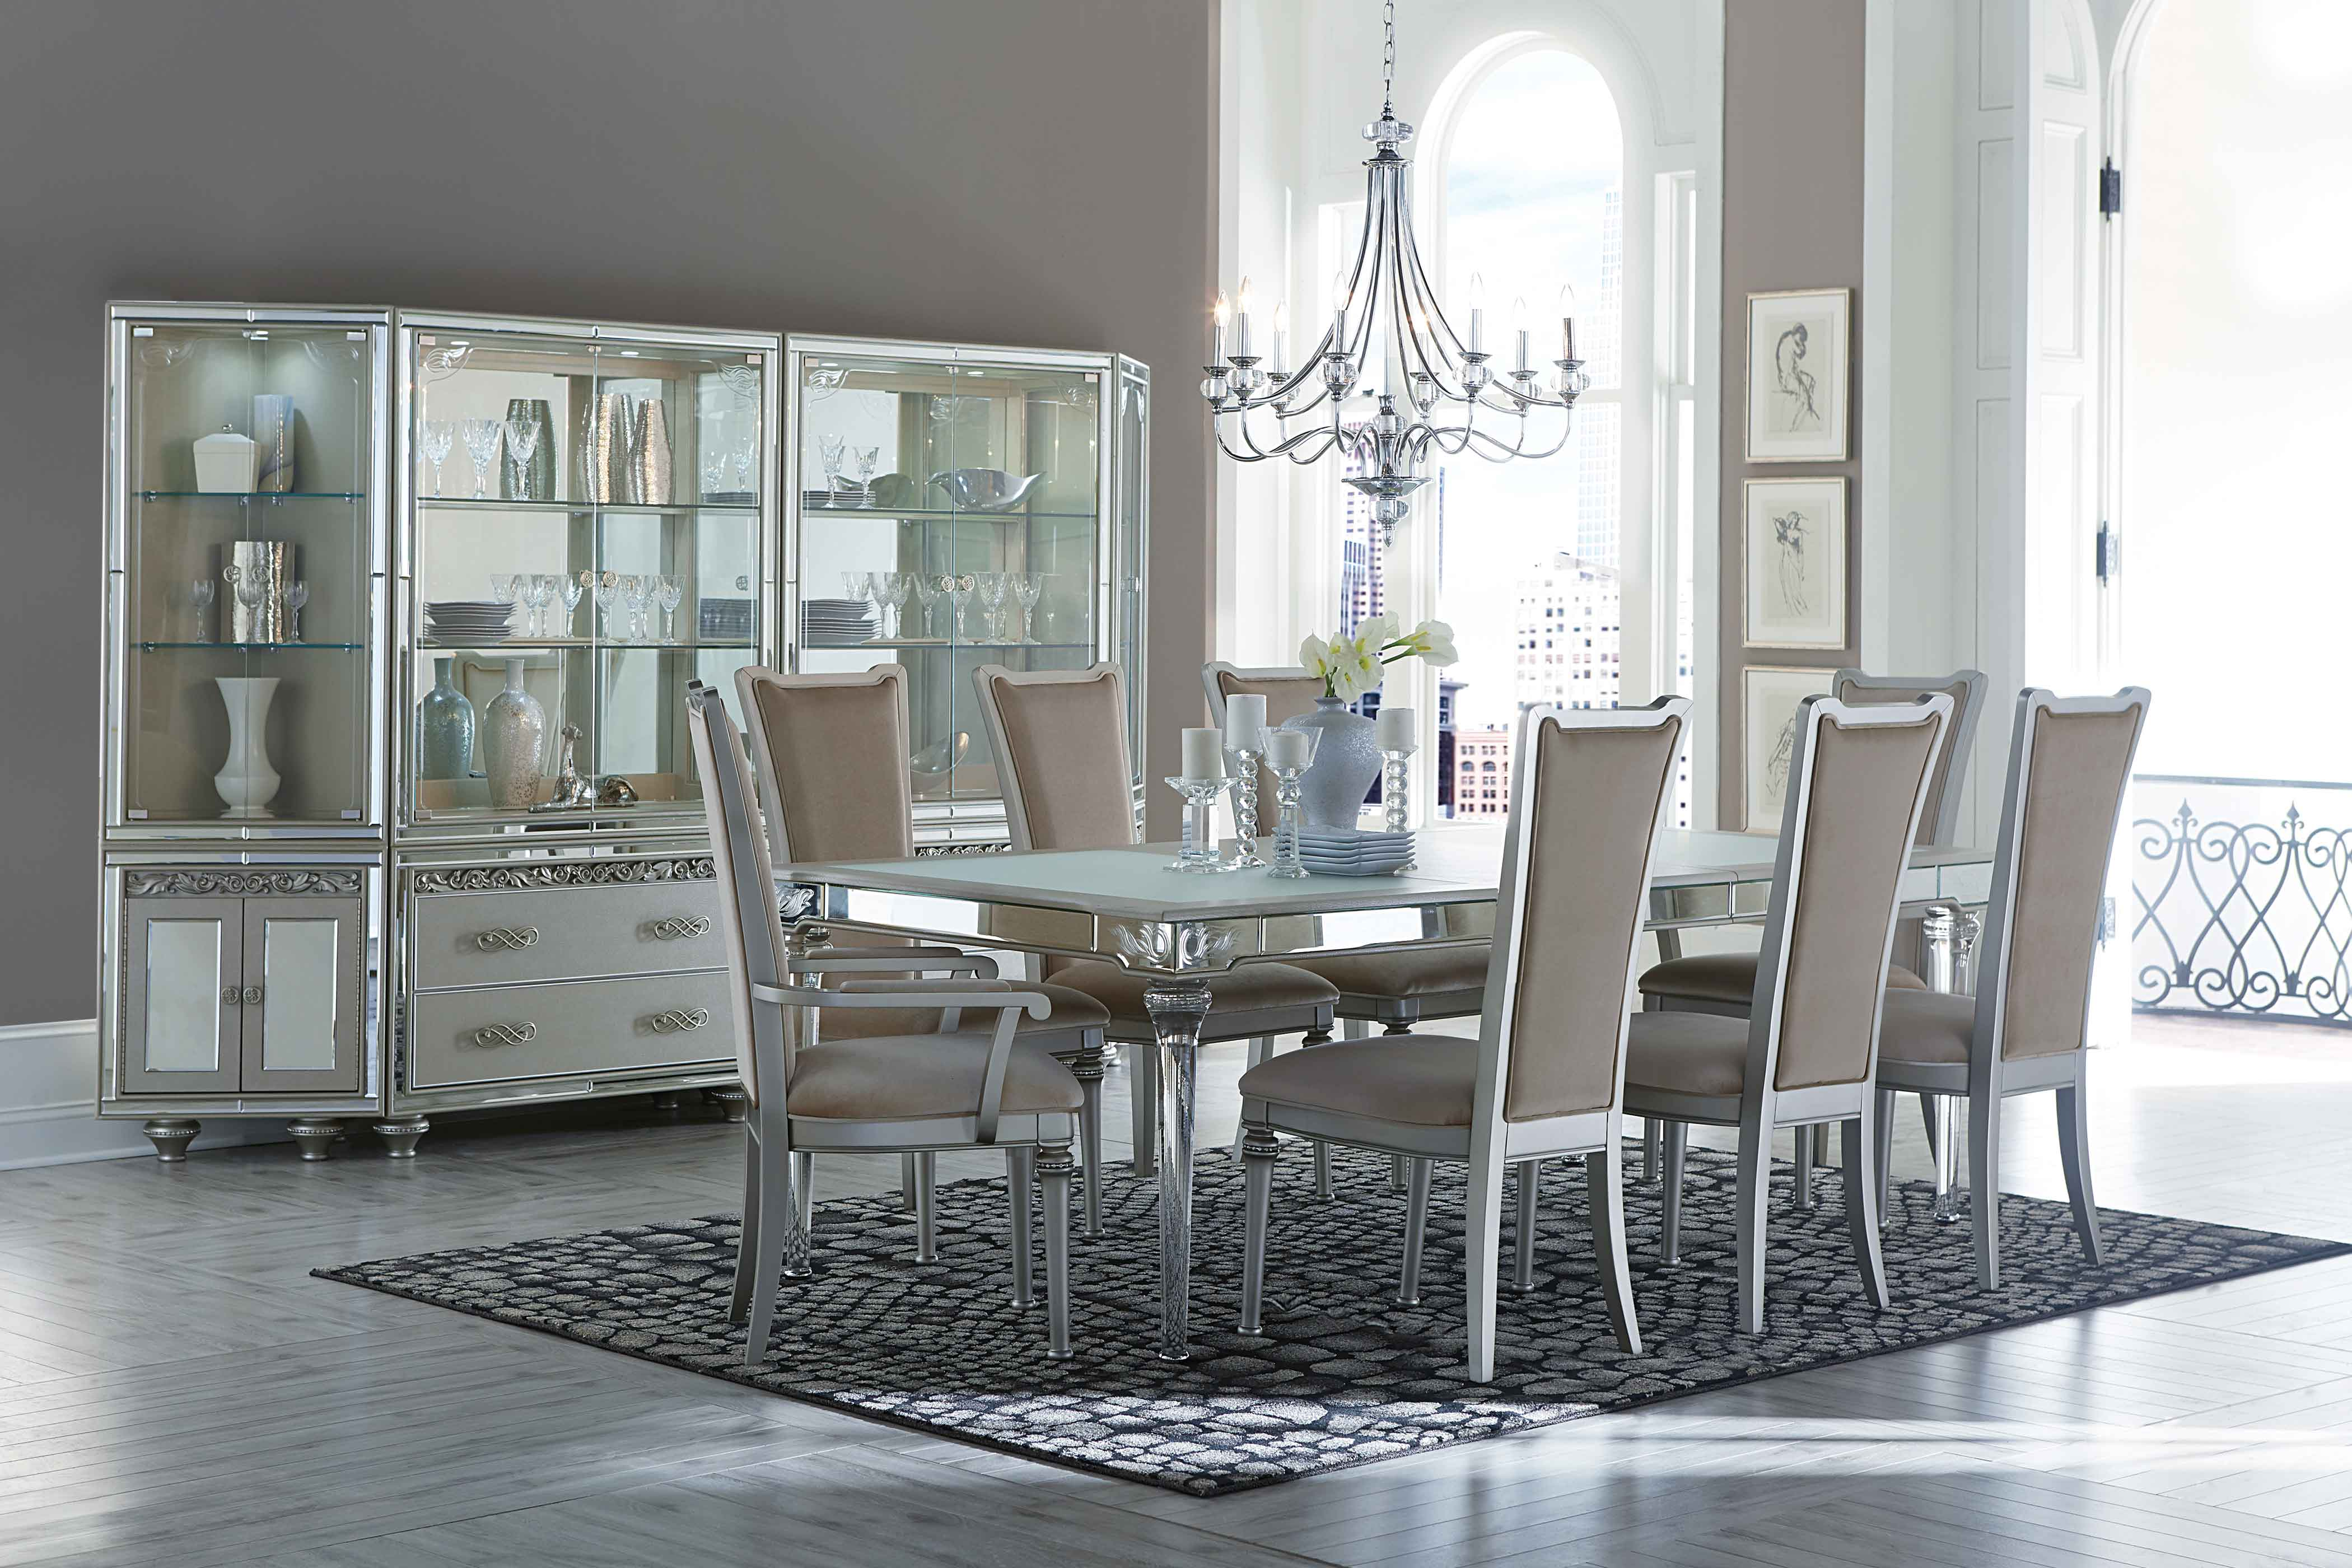 Aico bel air park dining room collection broadway furniture for Dining room collections